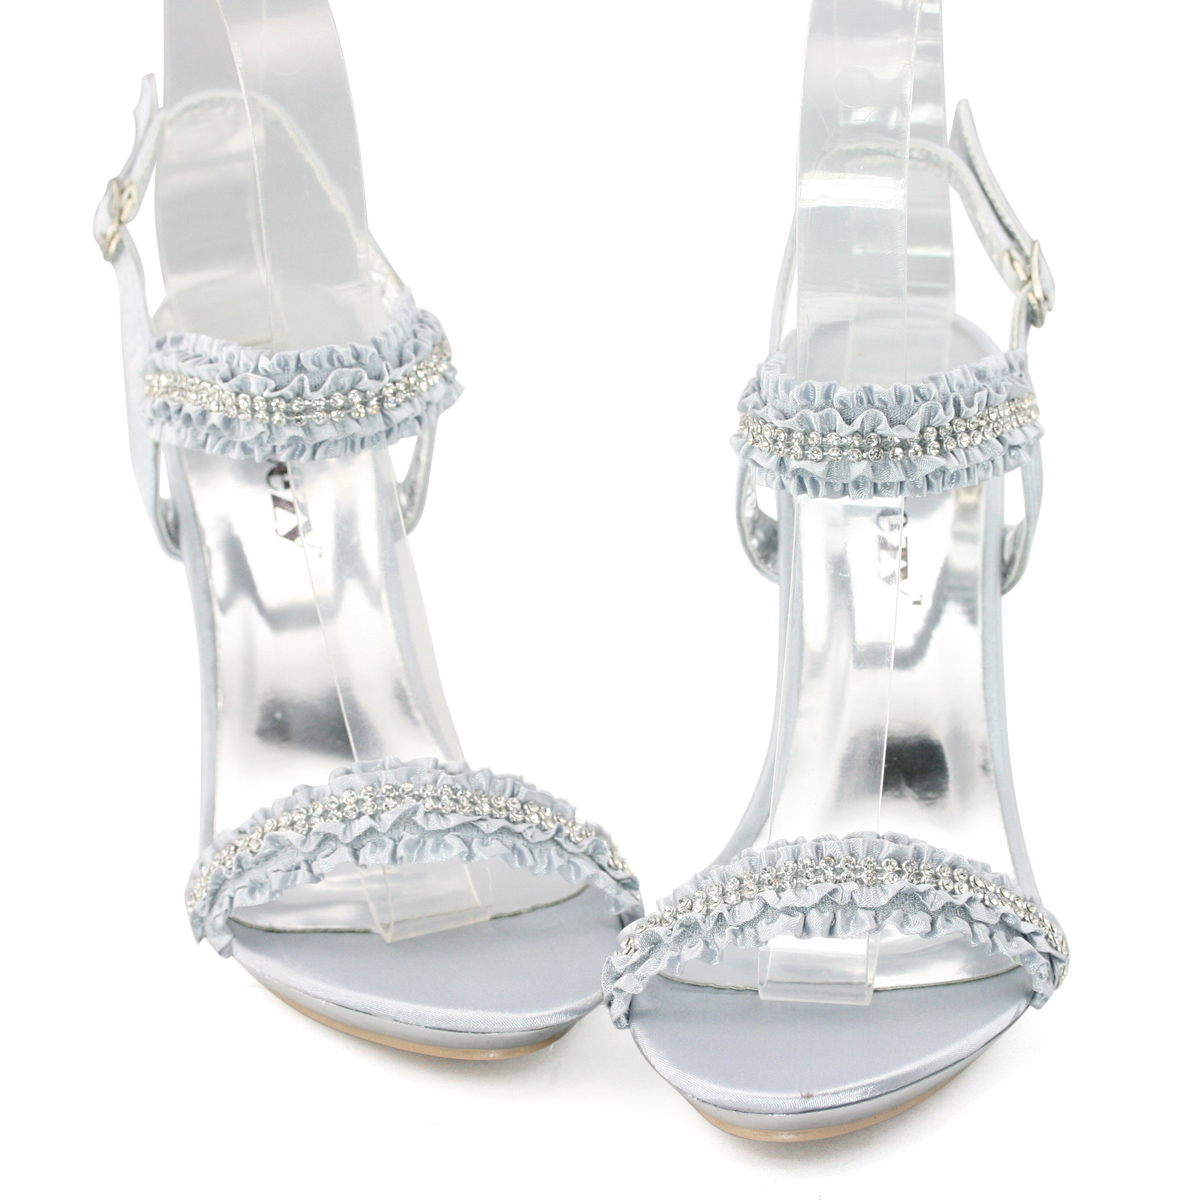 Silver sandals or shoes - Ladies Silver Diamond Ruffle Sandals Evening Shoes Amp Satin Designer Tote